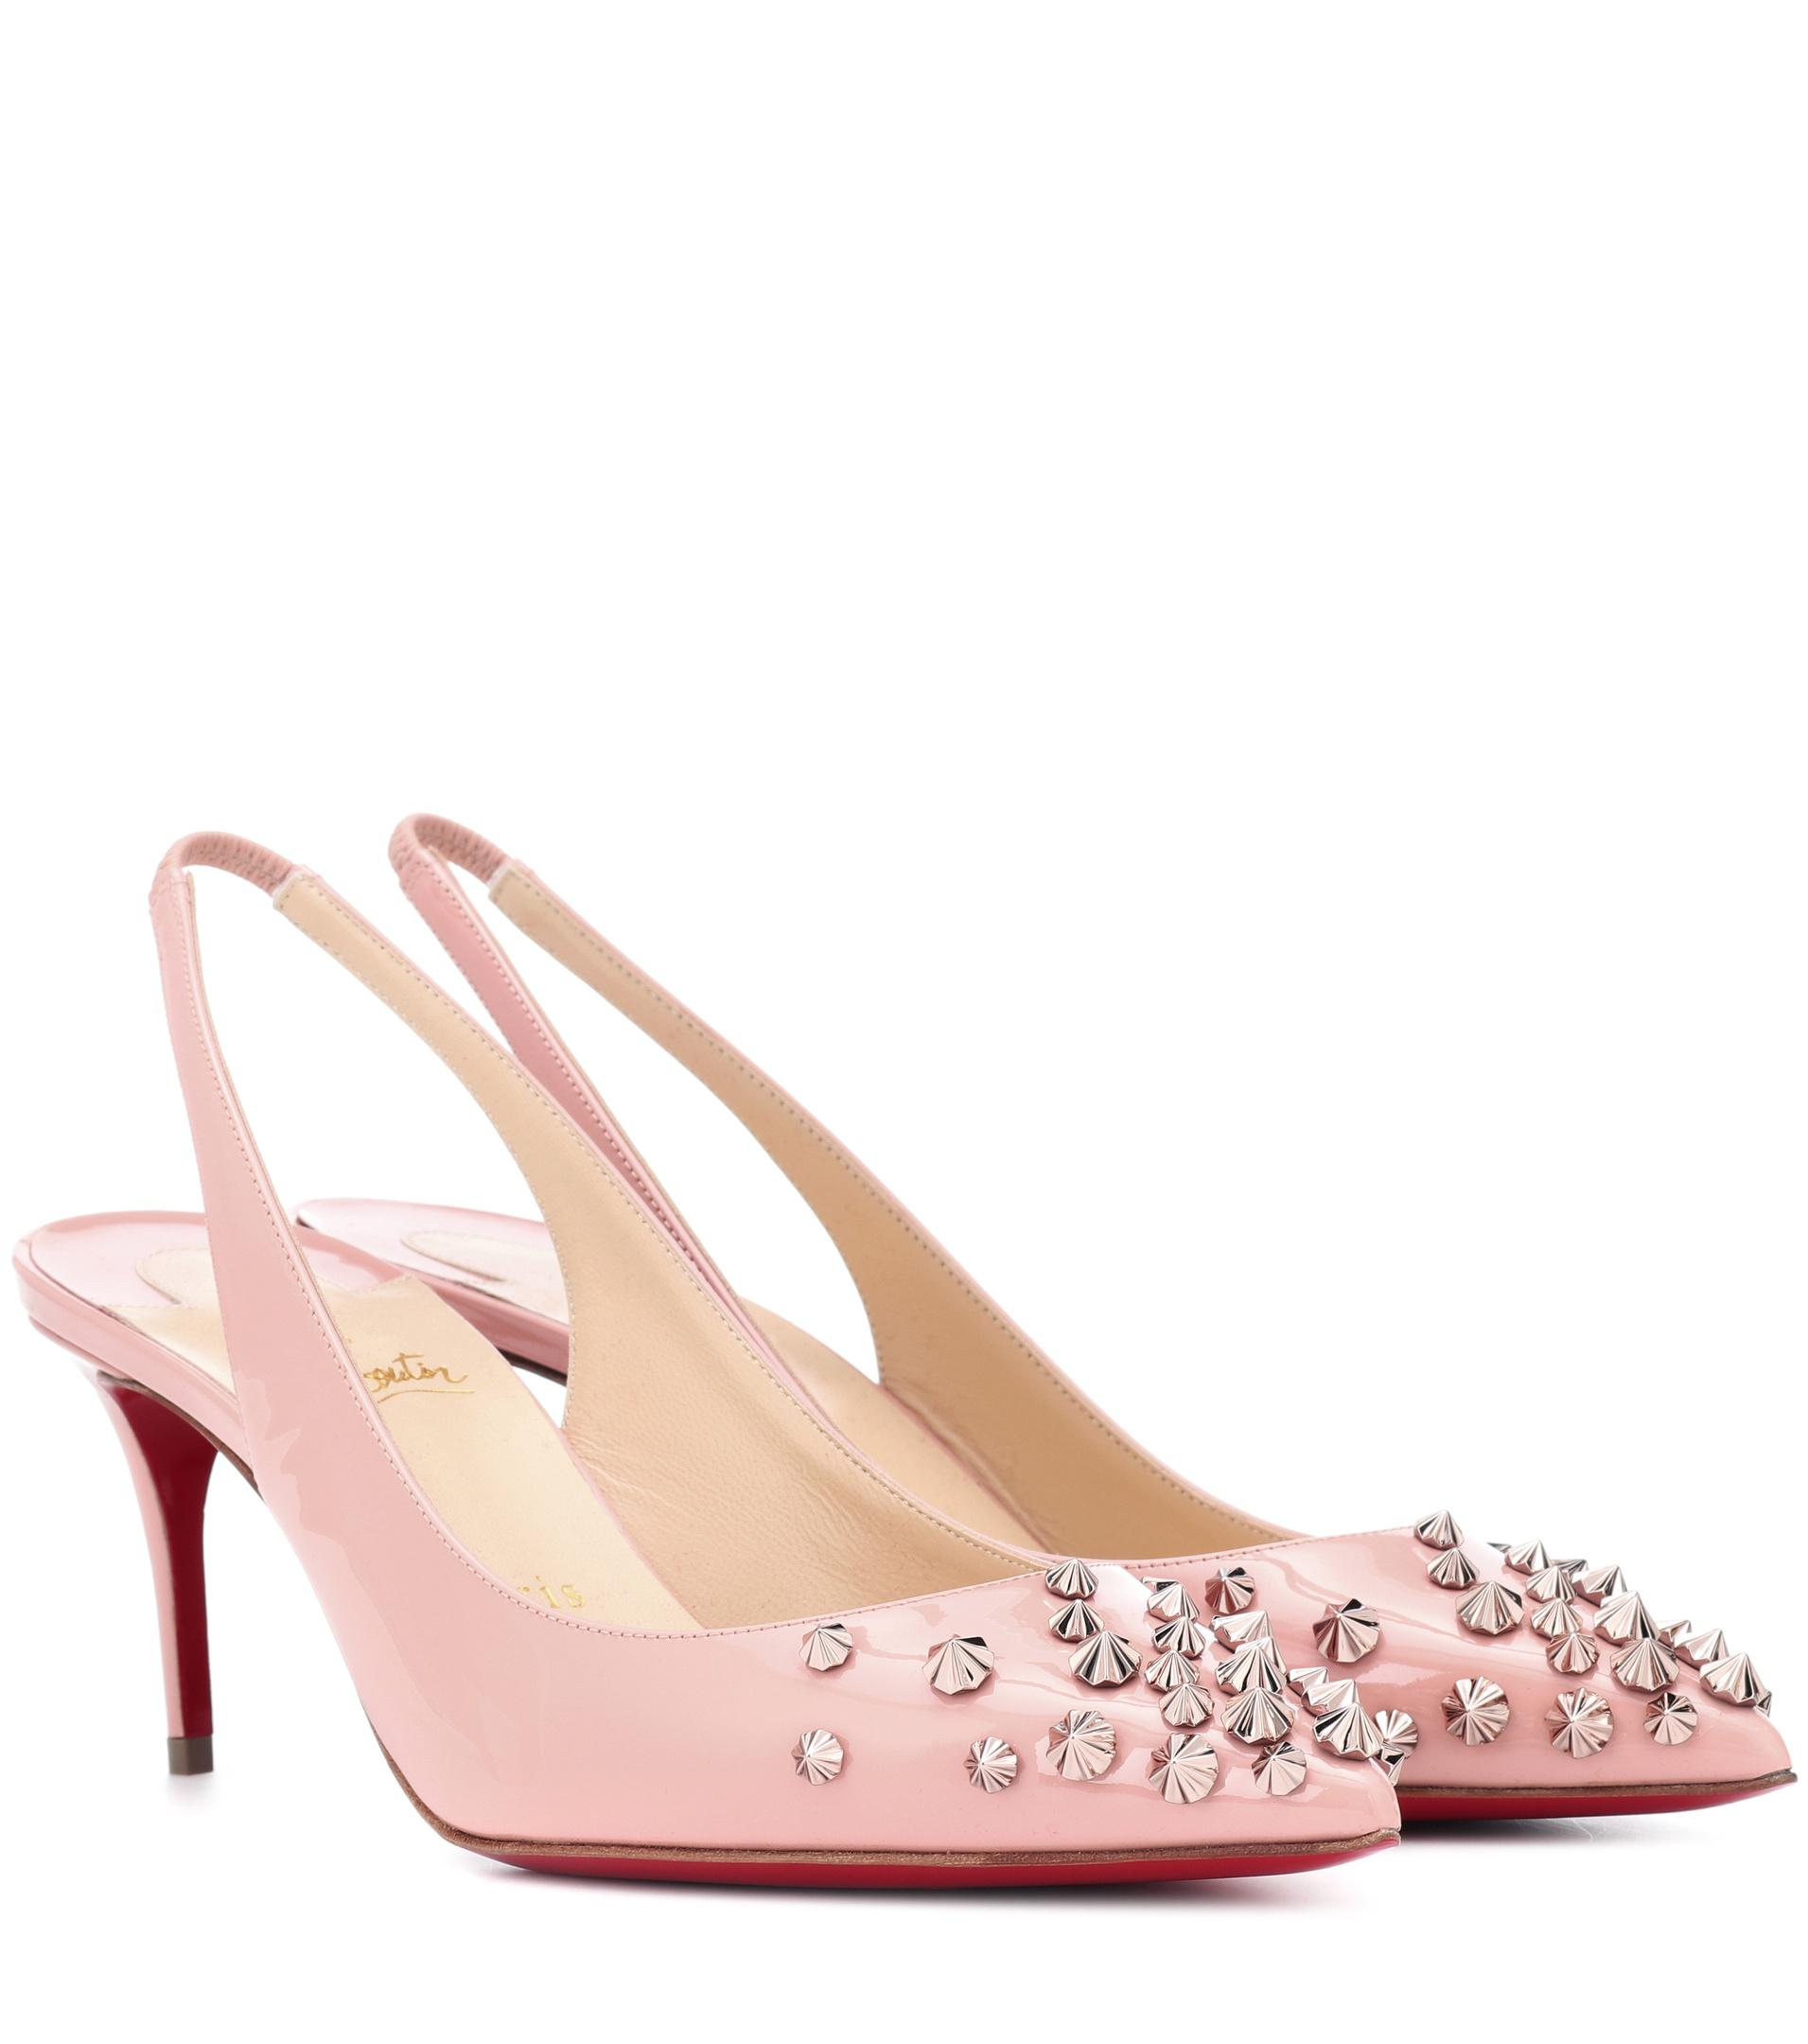 uk availability 1910c 3a85d Women's Pink Drama Sling 70 Patent Leather Pumps